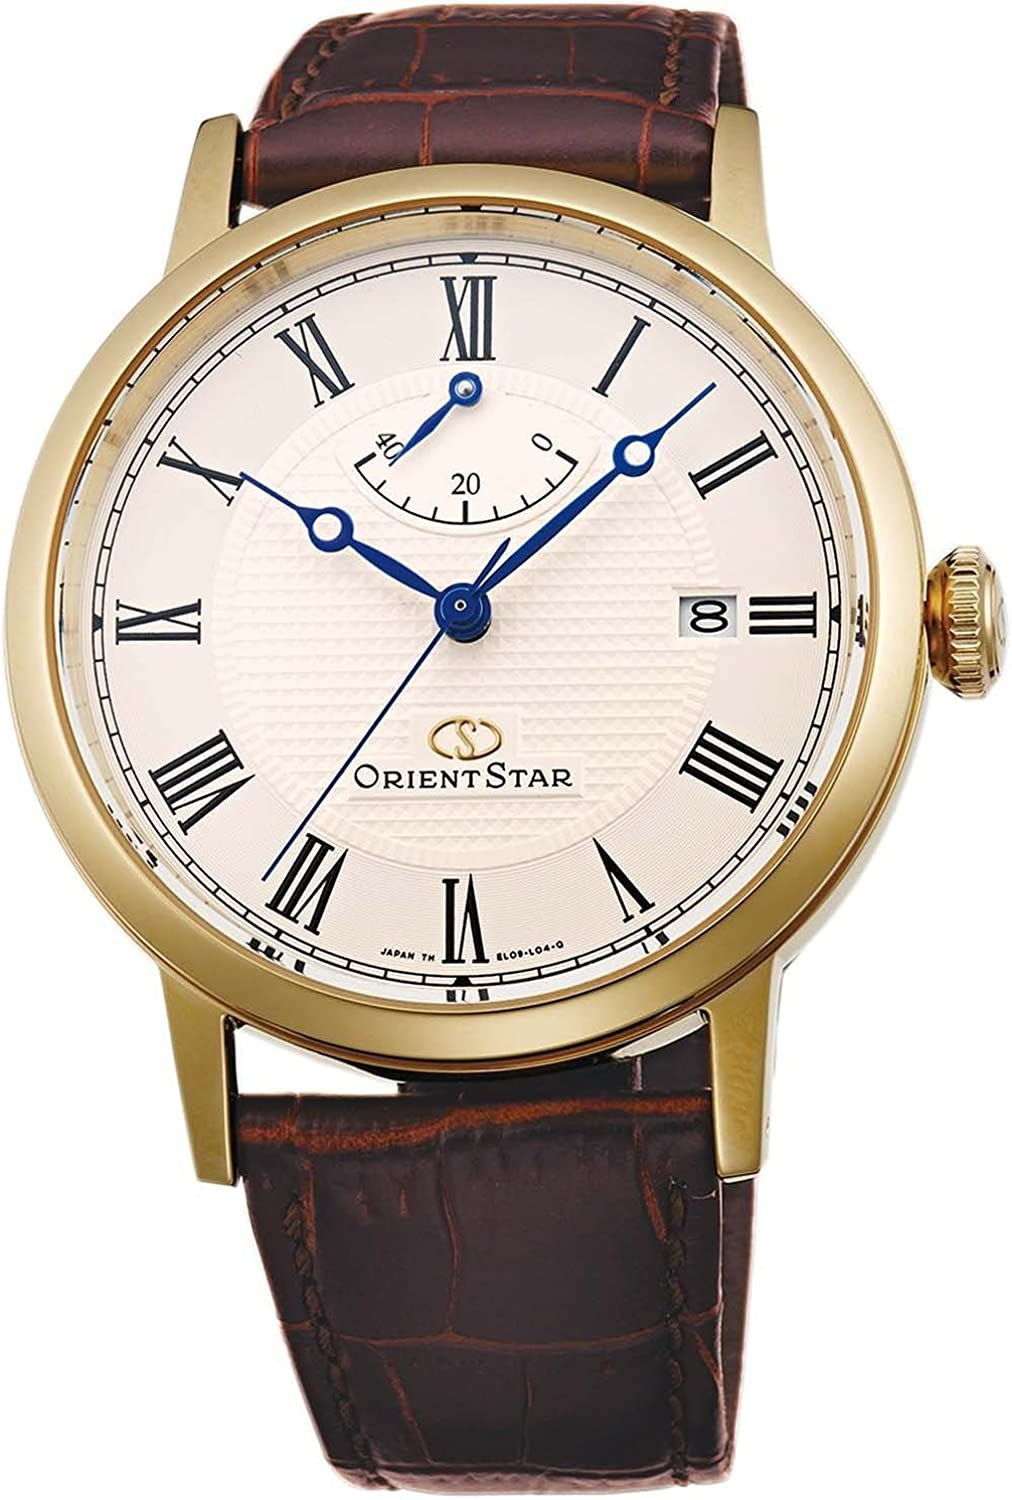 ORIENT STAR Classic Power Reserve Automatic Traditional Watch SEL09002W WZ0321EL